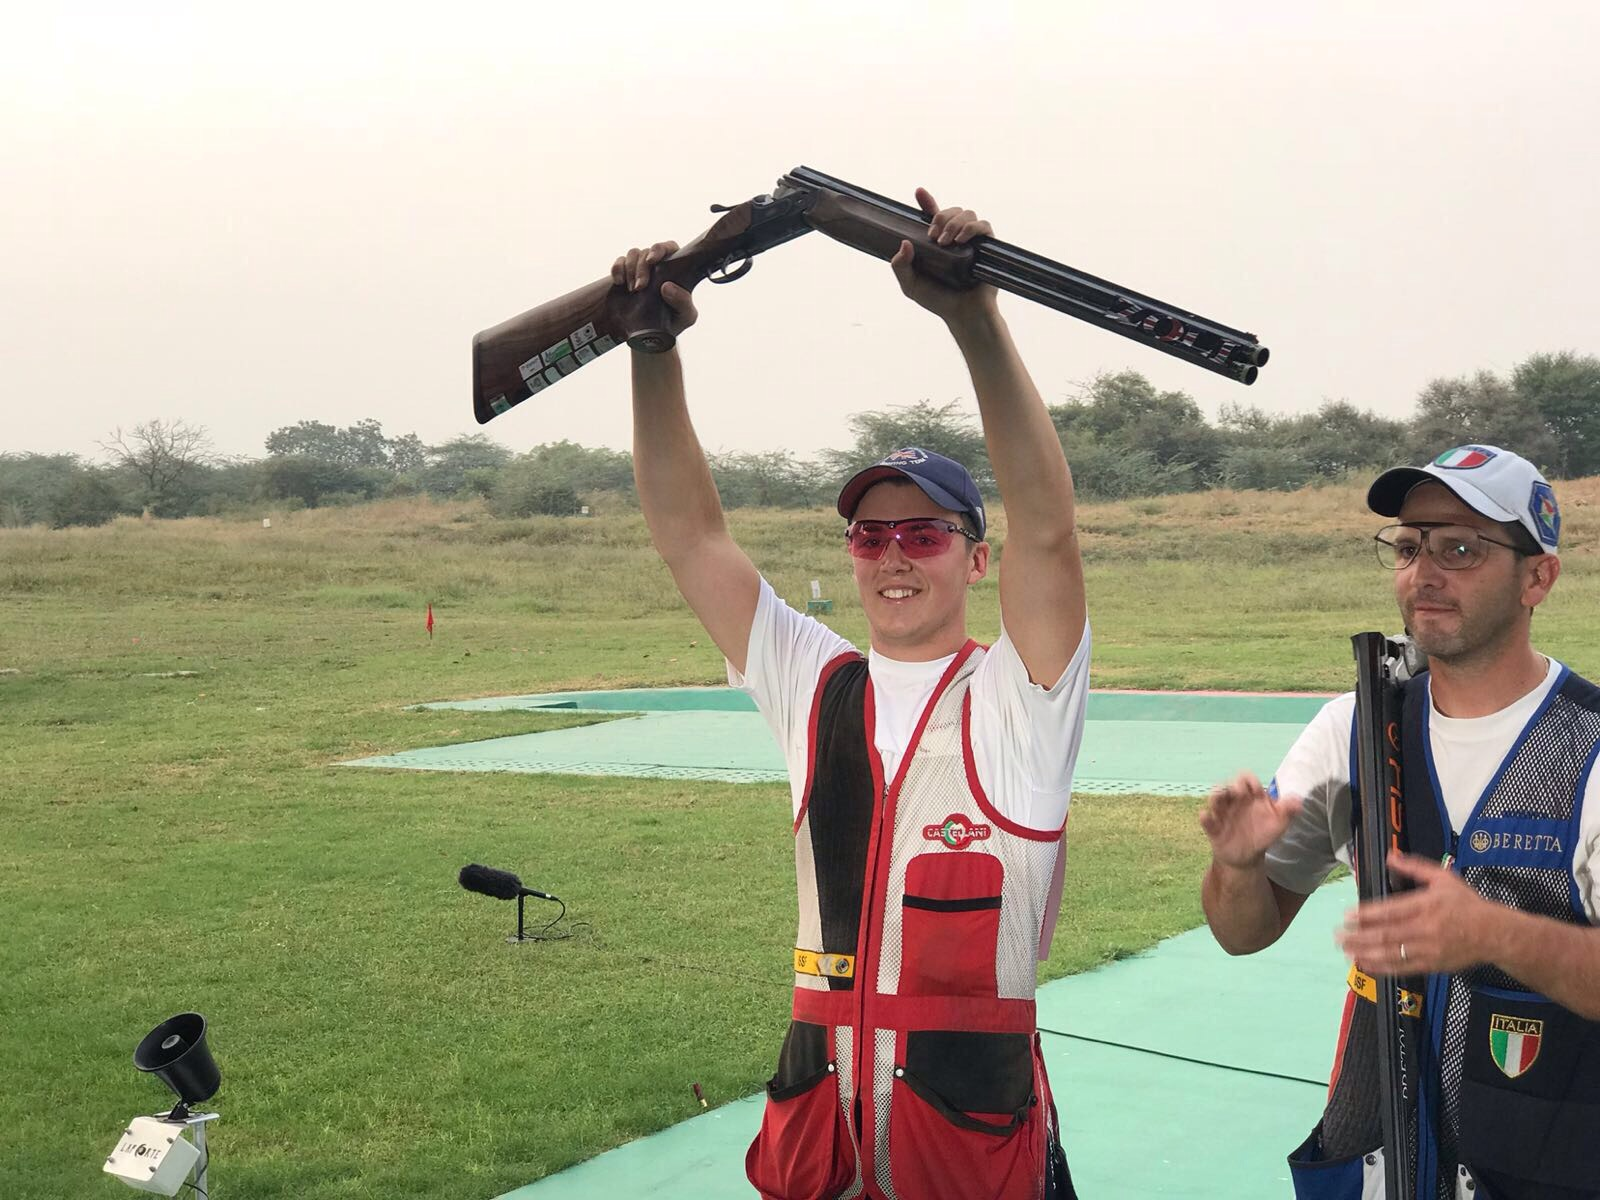 Ben Llewellin Takes Silver In ISSF World Cup Final